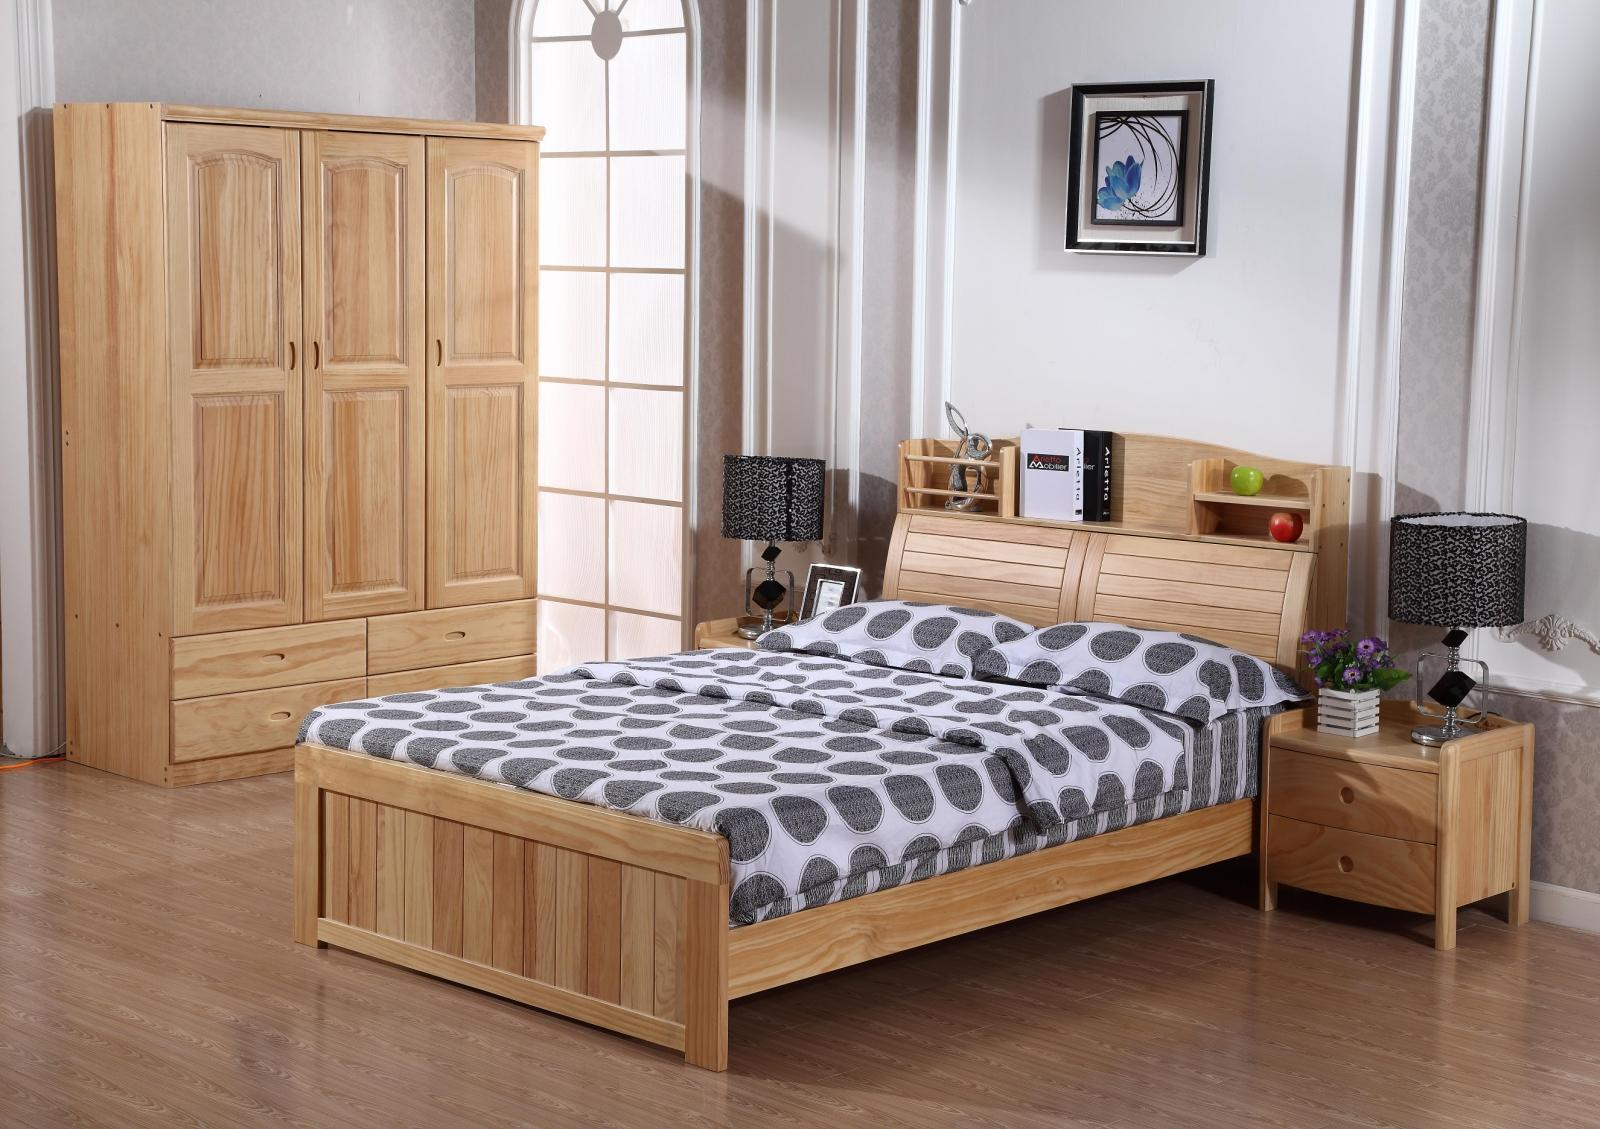 Counter new zealand pine bookcase solid wood bedroom furniture child bed can be pumped with high pressure tank